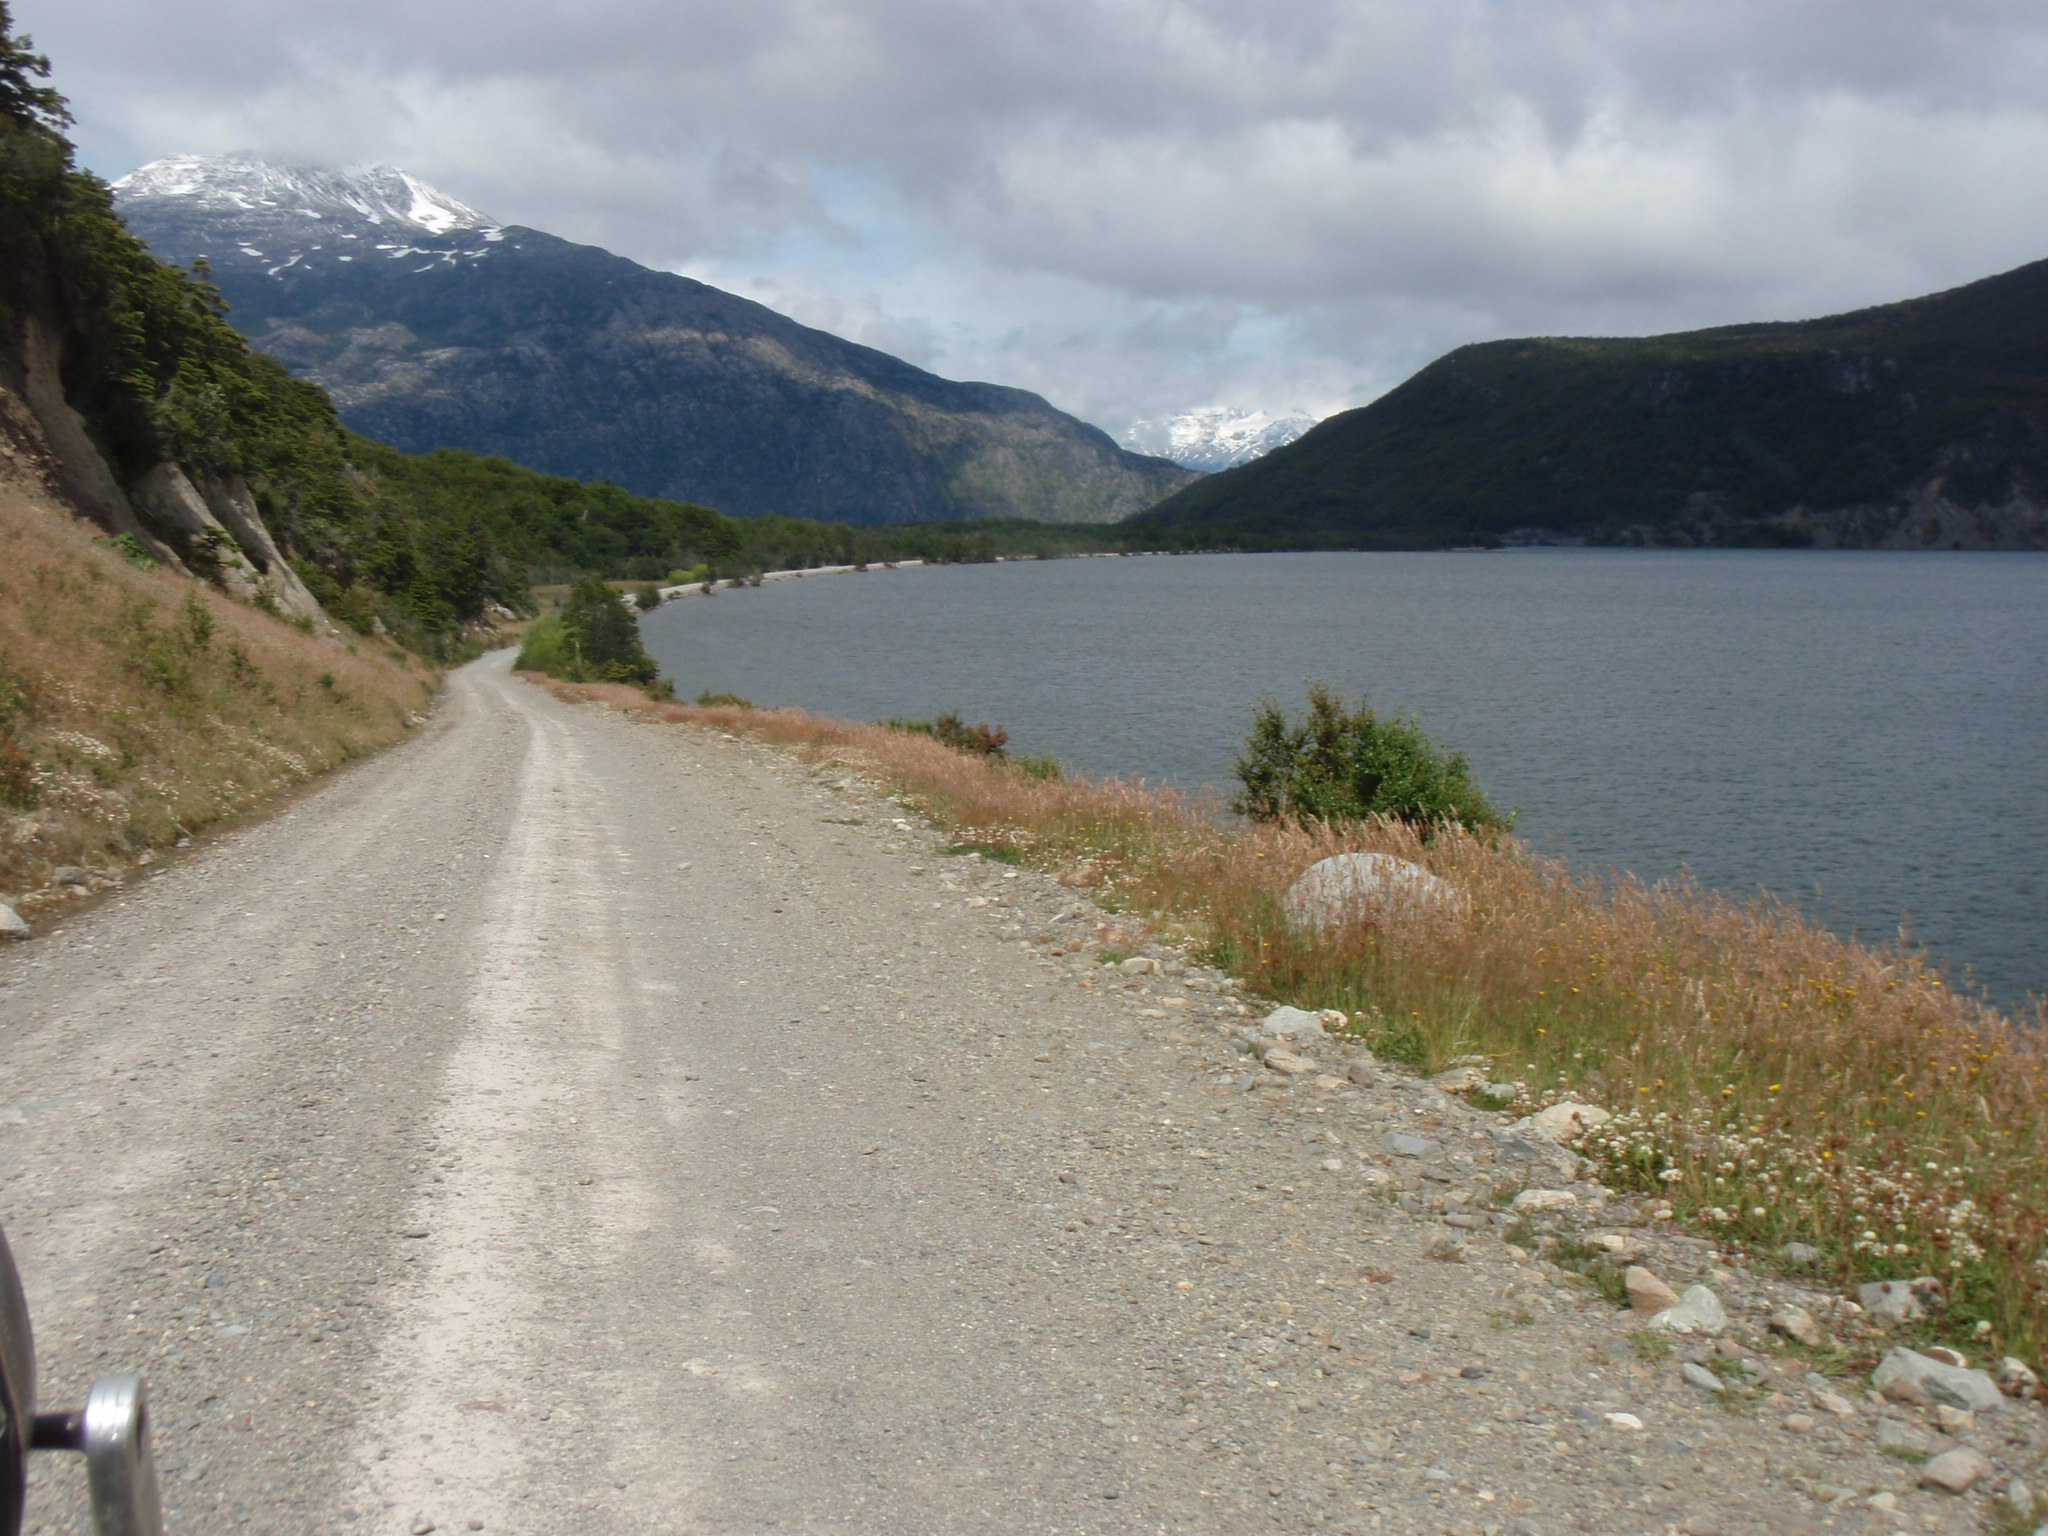 Carreterra Austral - a gravel road along lakes and lonely valleys